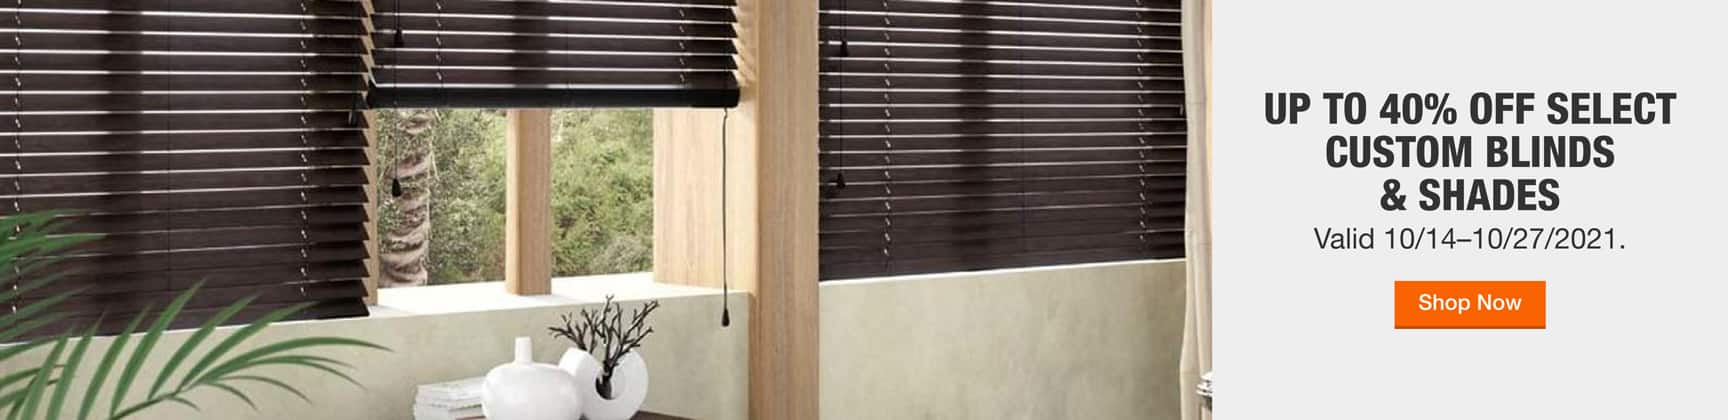 Up to 40% off Select Blinds & Shades